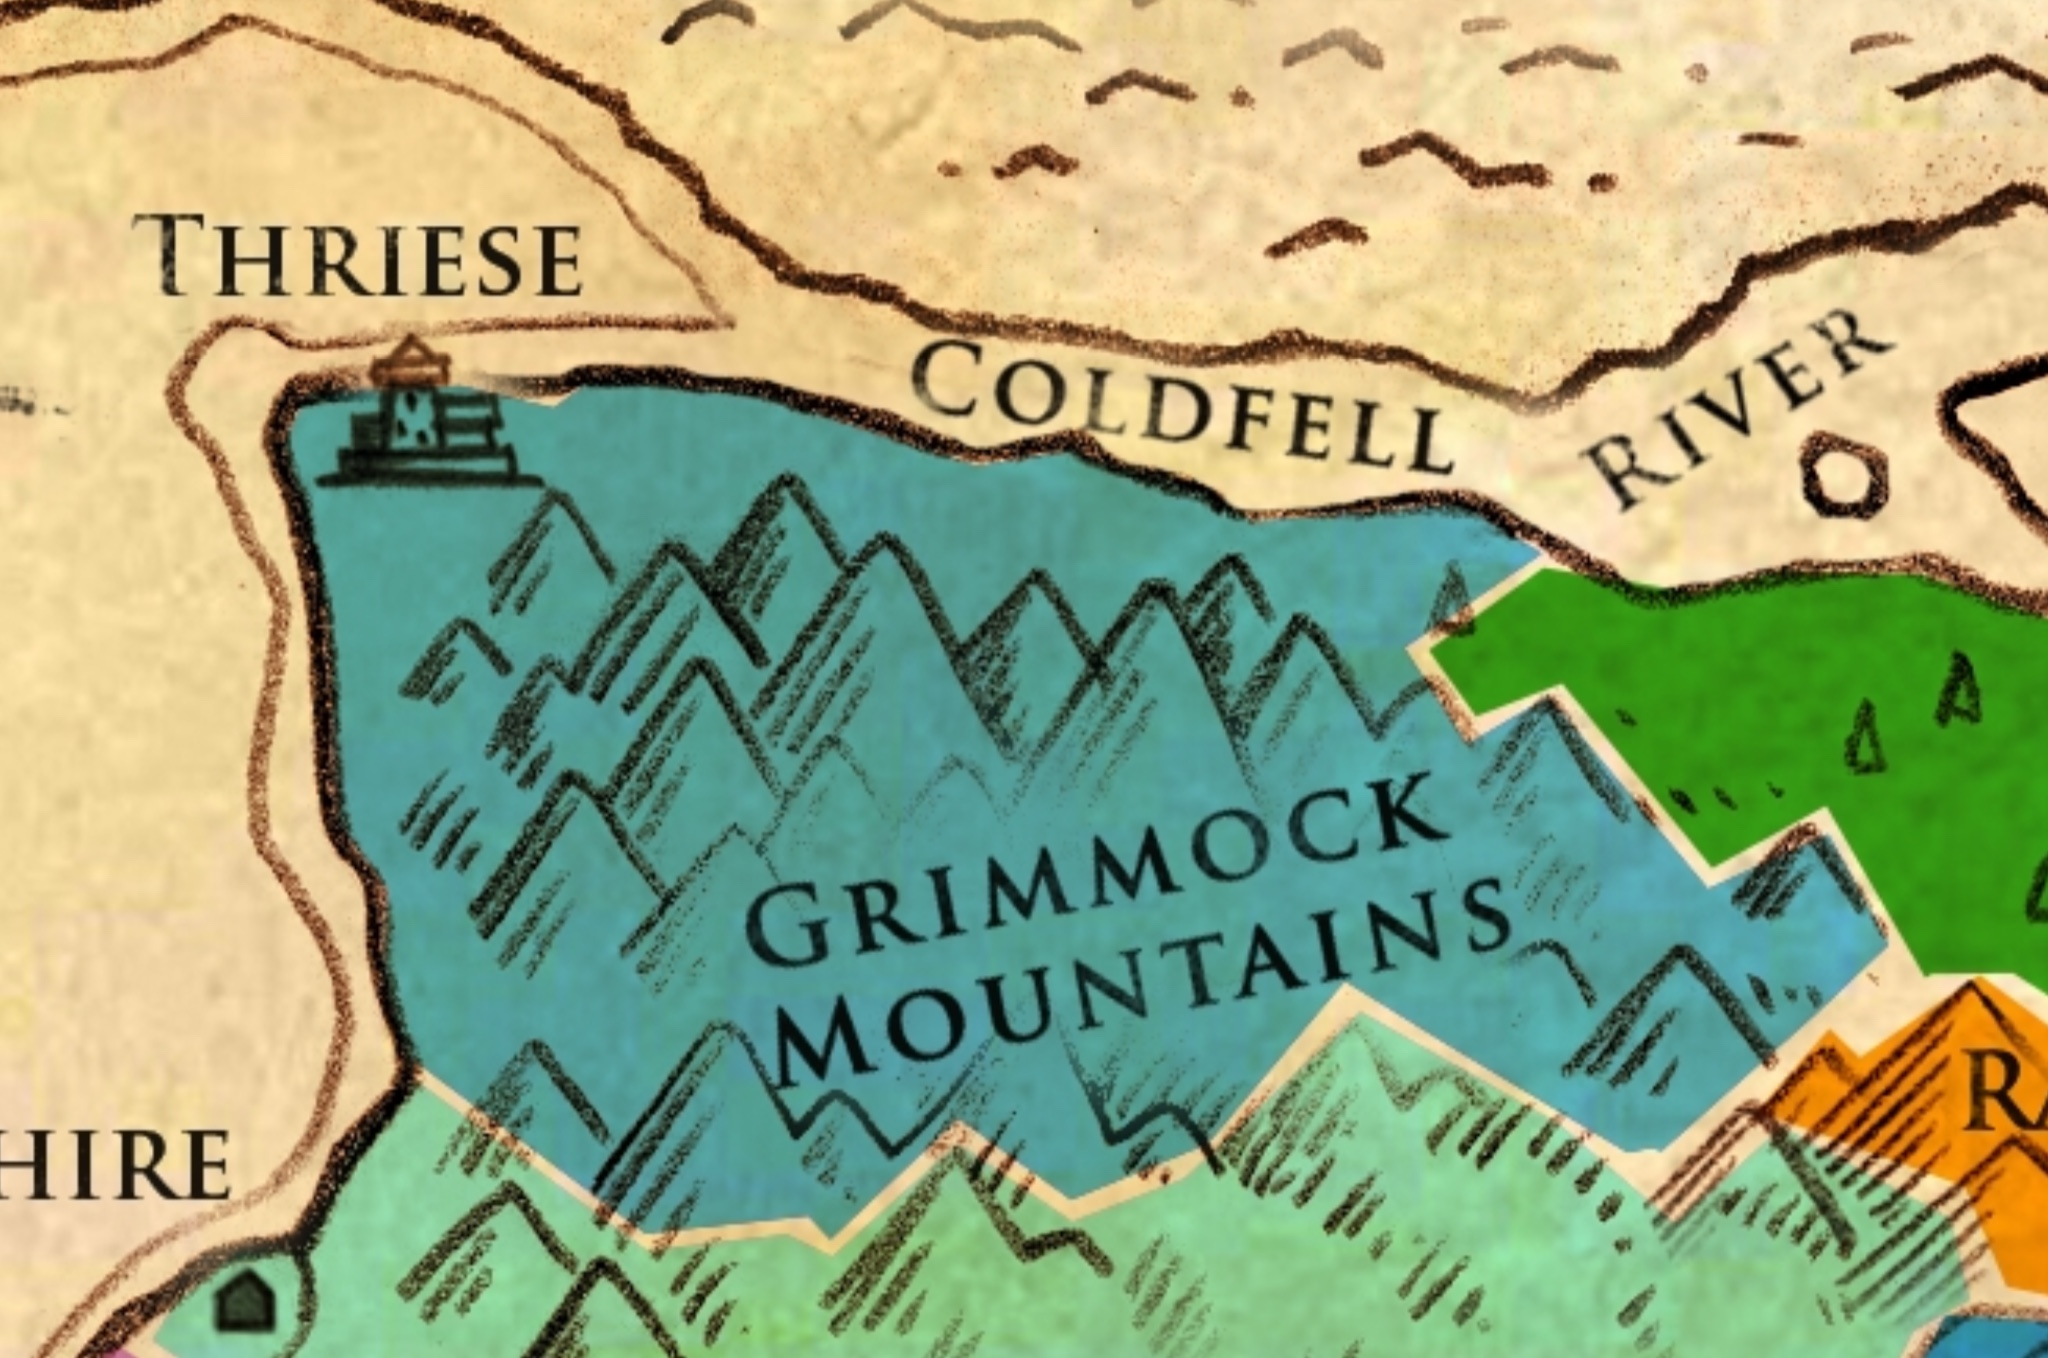 GRIMMOCK - Known For: While the majority of the land in Grimmock is mountainous and nigh impassible to travelers, it's coastline is perfect for the building of ships and seafaring peoples that call it home. One of the more independent regions due to their ability to travel beyond the seas around Olaran and beyond, they have a strong voice in the politics and trade of the entire kingdom.Key Households:House of the Earl of ThroiTopography: Harsh mountains and cliffs along the coast broken up by naturally protected bays and harboursEconomy: Fishing, Ship Building, Transporting of Trade goods for other regions.Major Cities:Thriese - The capital of the region and the seat of power for the Earl of Throi. It is the largest port in Olaran and is both rich and well defended.Other Cities:N/ALocations of Note:The Sea Lord Naval Yard - The birthplace of some of the greatest seafaring vessels in Olaran if not Adrasil.The Grimmock Mountains - Though not as formidable as the Fire Mountains to the south, these peaks are not to be trifled with.